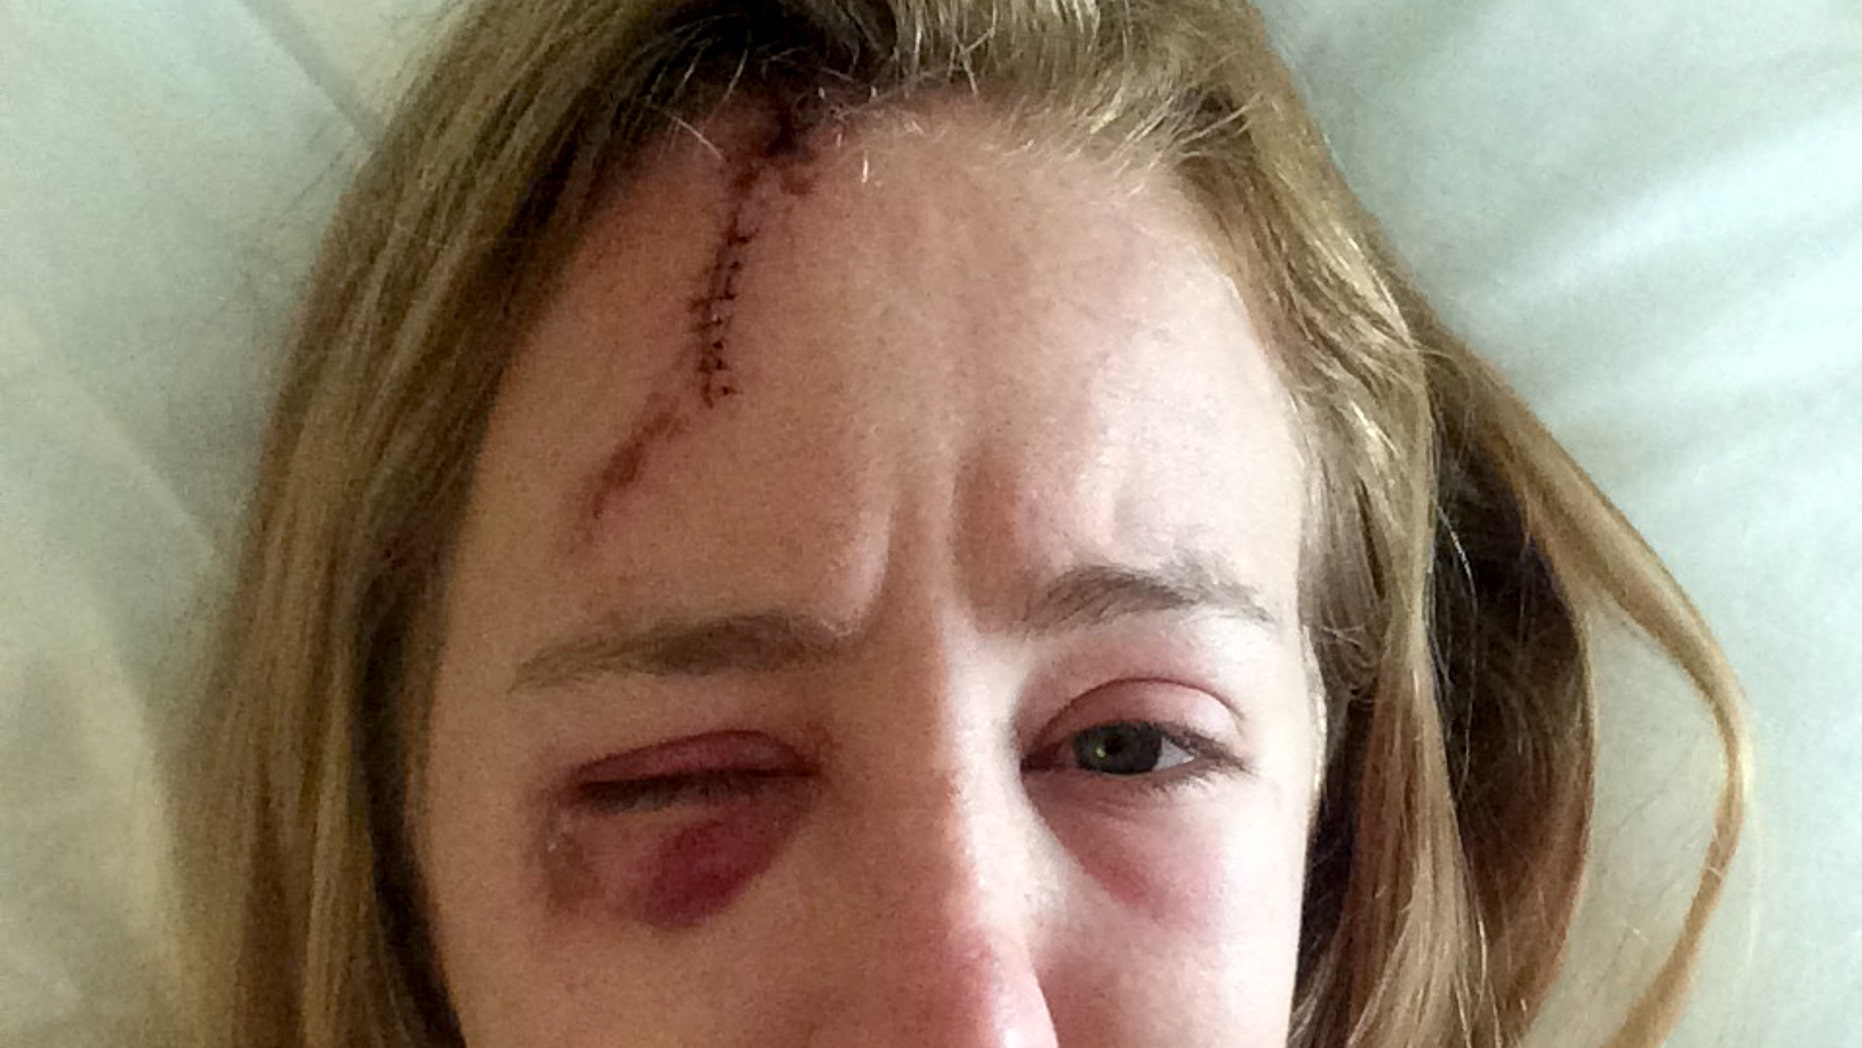 In this photo taken on June 19, 2015 provided by Mollyann Hart, Hart poses for a selfie showing injuries from a lightning strike while recovering at a hospital in Hagerstown, Md. She and her sister were struck after taking shelter inside a stone observation tower at Washington Monument State Park. The tower reopened Thursday, April 28, 2016, after a closure to repair damage caused by the strike. (Mollyann Hart via AP)